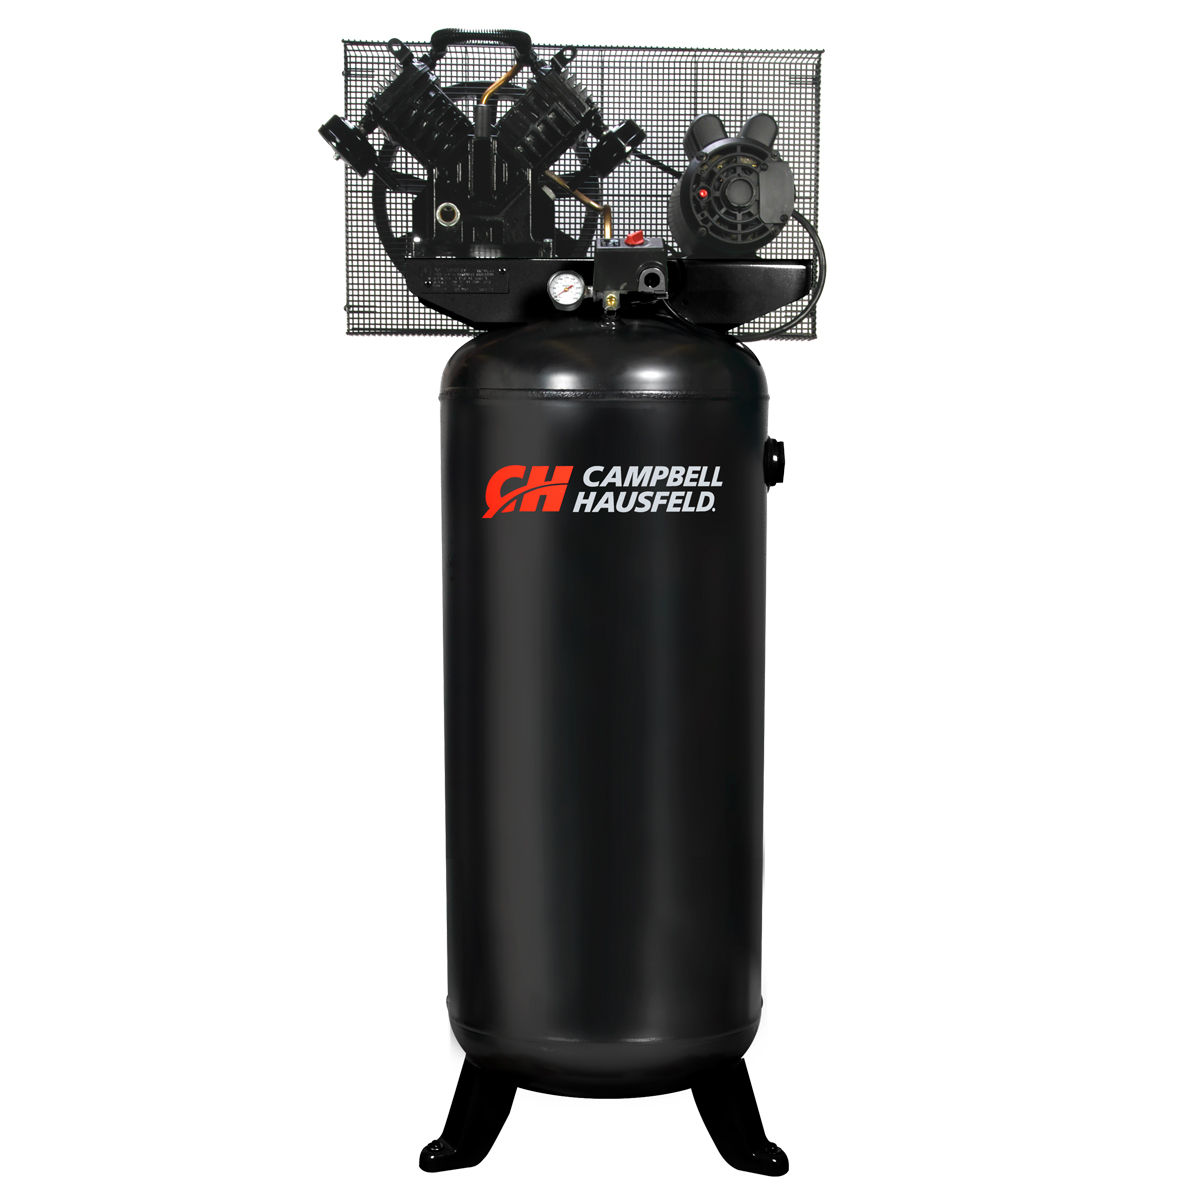 Campbel Hausfeld Air Compressor, 60-Gallon Vertical Single-Stage 16CFM 5HP 208-230V 1PH (CE4101) product image center